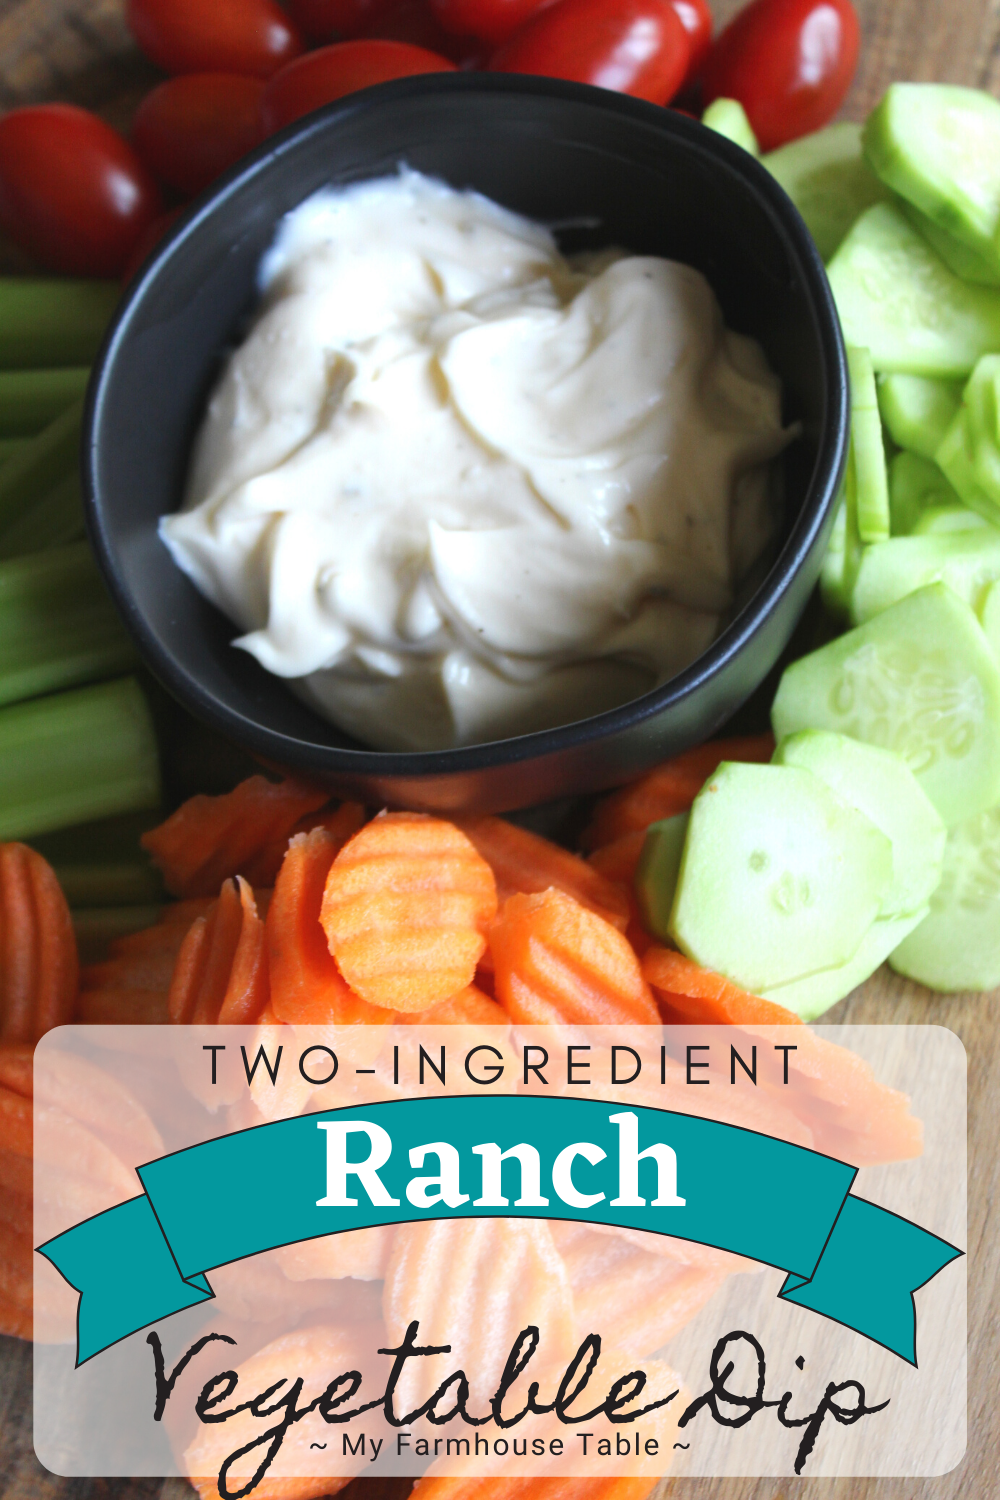 Two-Ingredient Ranch Vegetable Dip Easy Homemade Hidden Valley Ranch Veggie Dip Recipe My Farmhouse Table